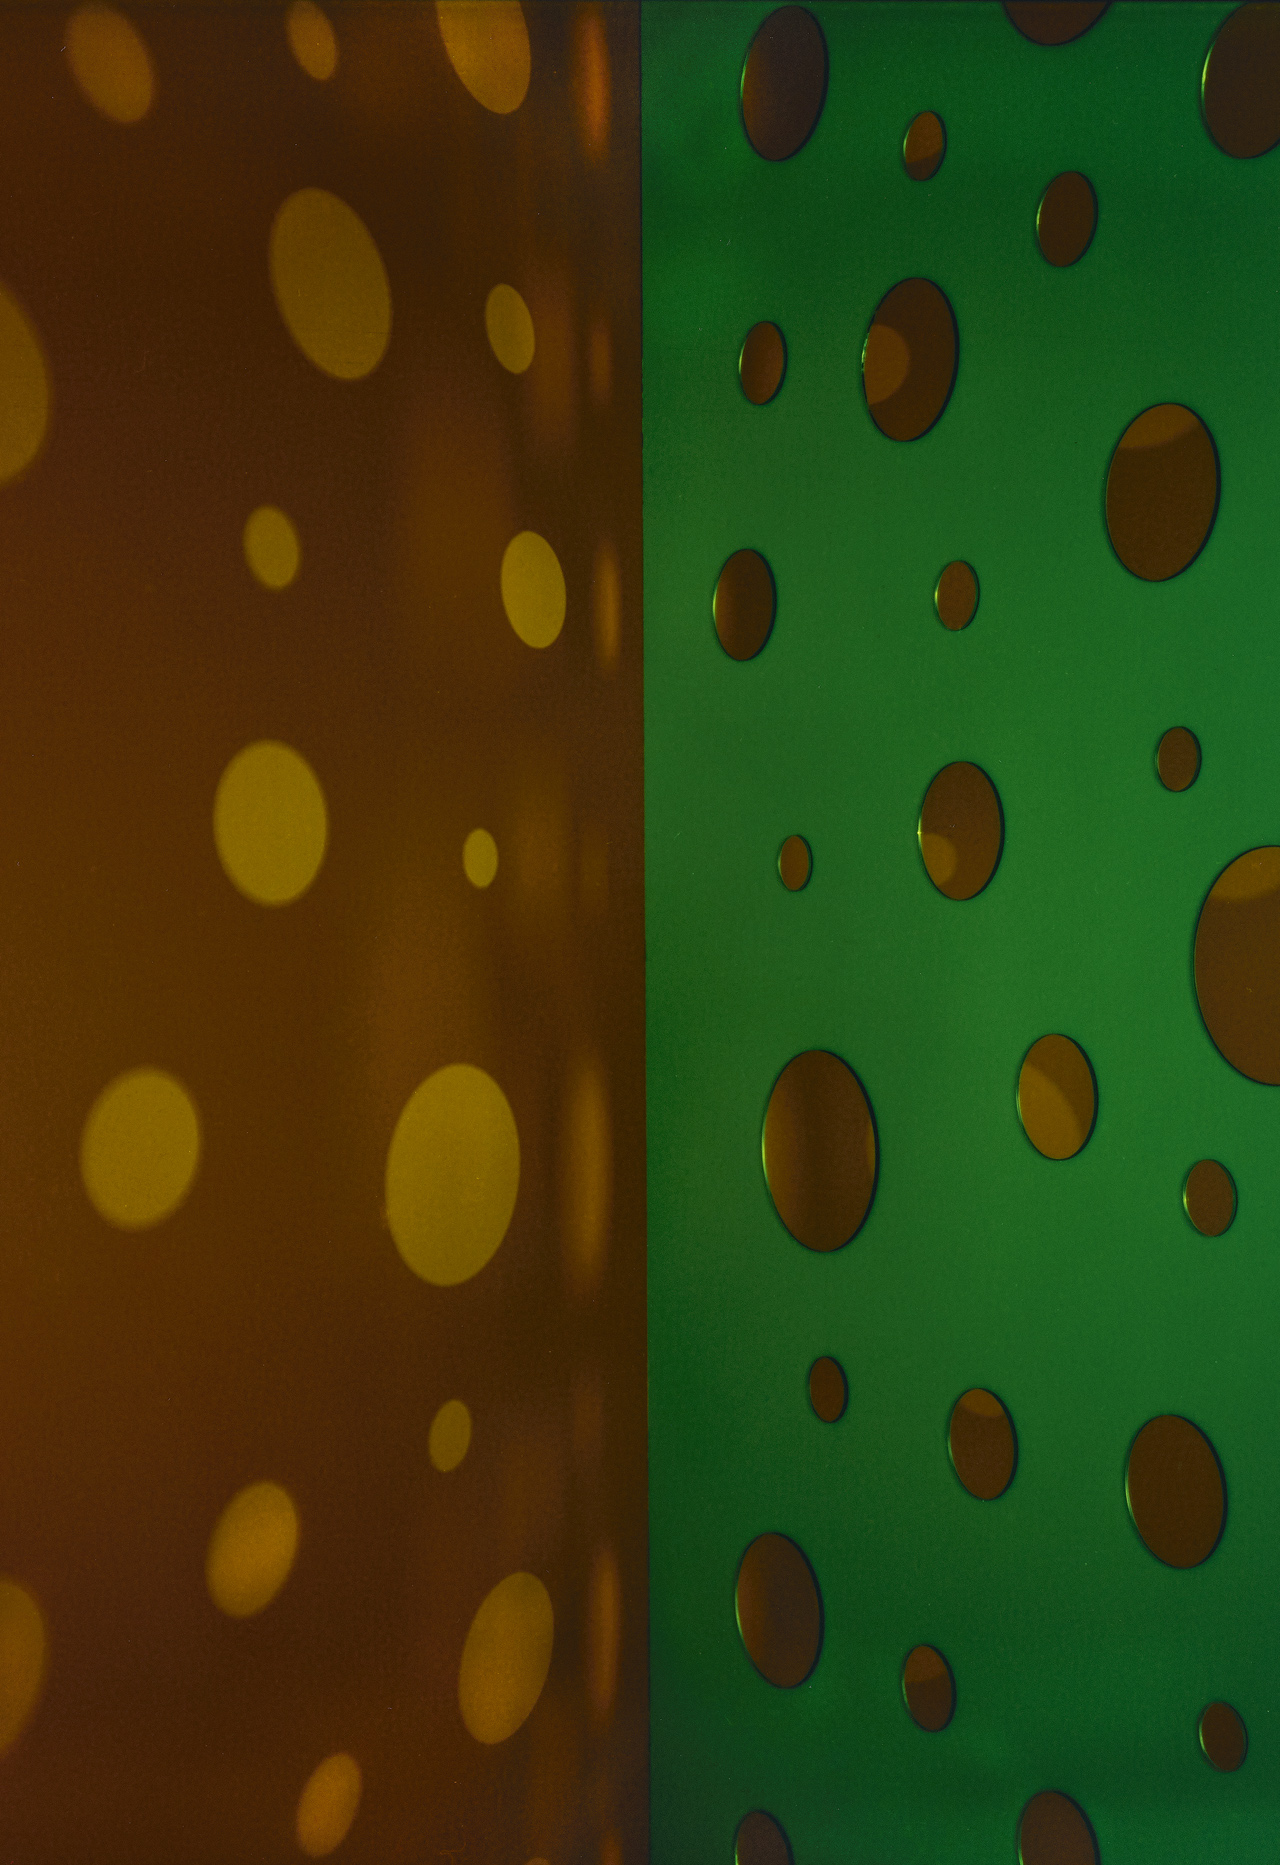 JACKY REDGATE   Light Throw (Mirrors) Fold - Yellow-Brown and Green  2018 Chromogenic photograph handprinted 185 x 127 cm